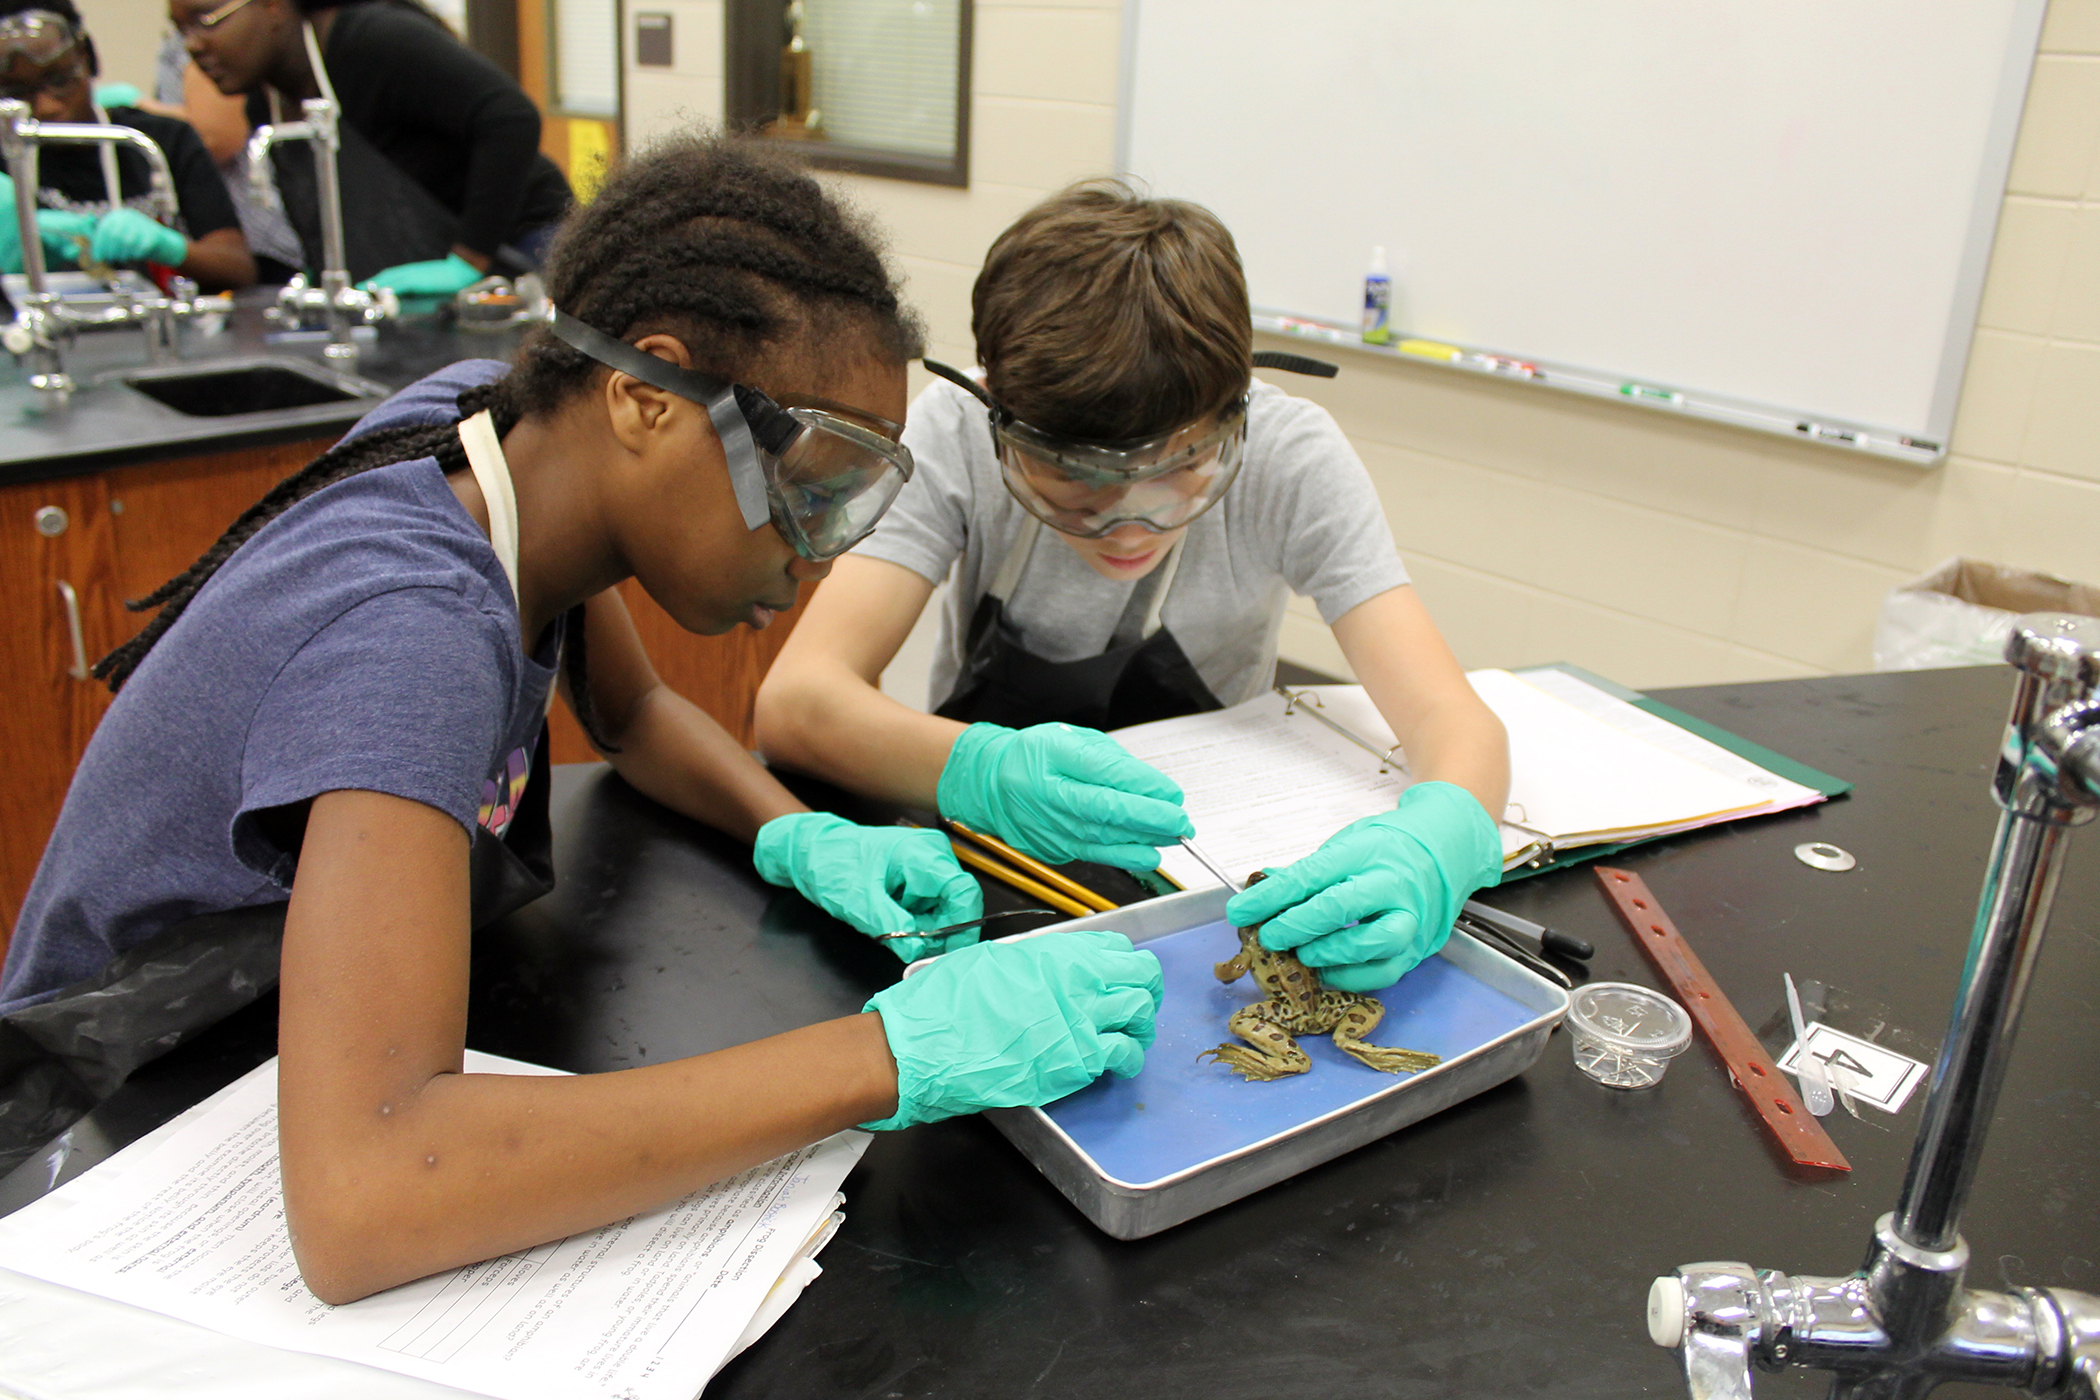 dissecting frogs